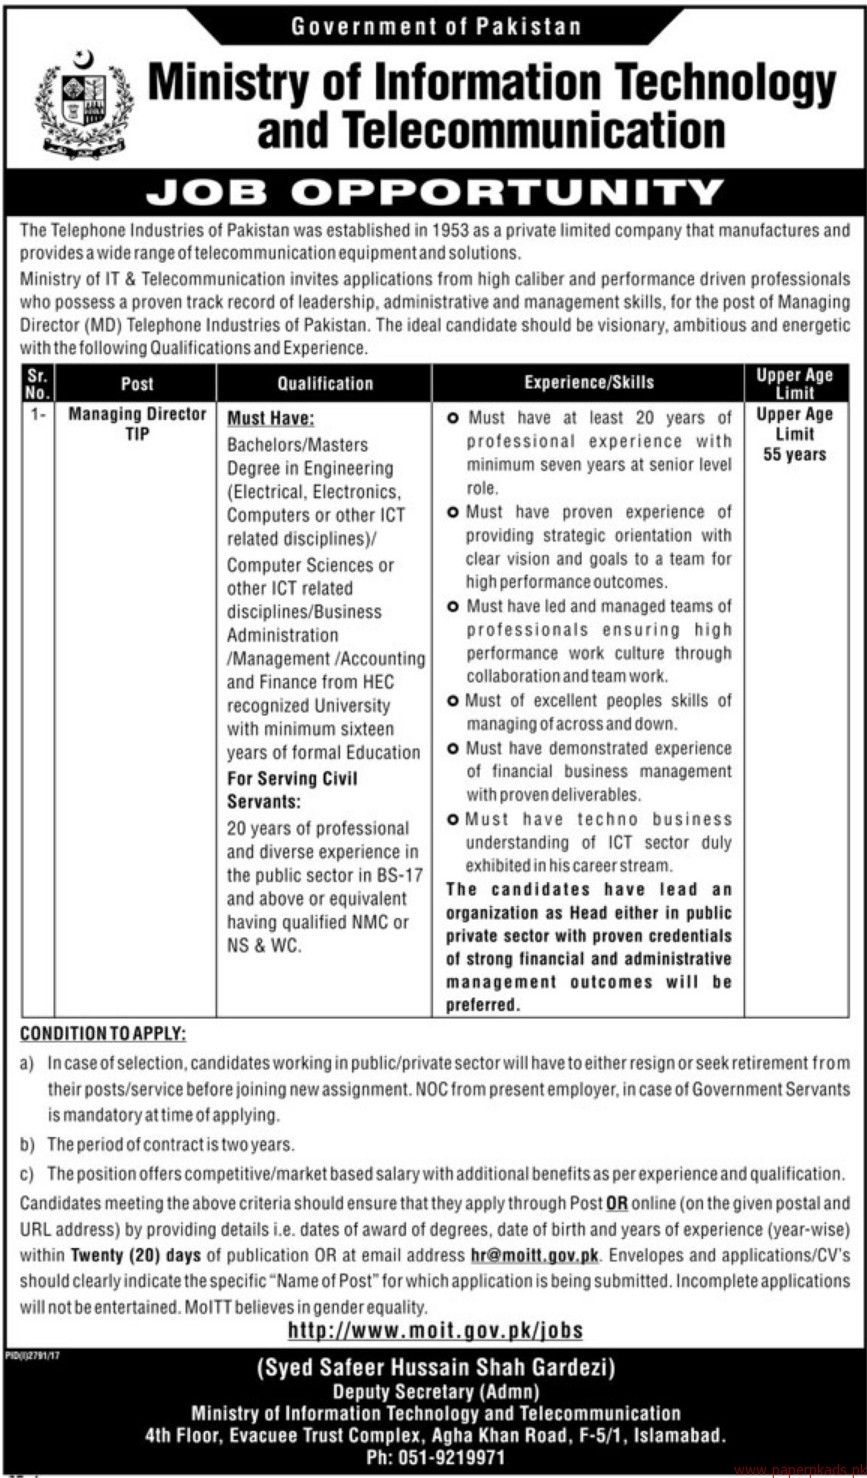 Government of Pakistan - Ministry of Information Technology and Telecommunication Jobs 2017